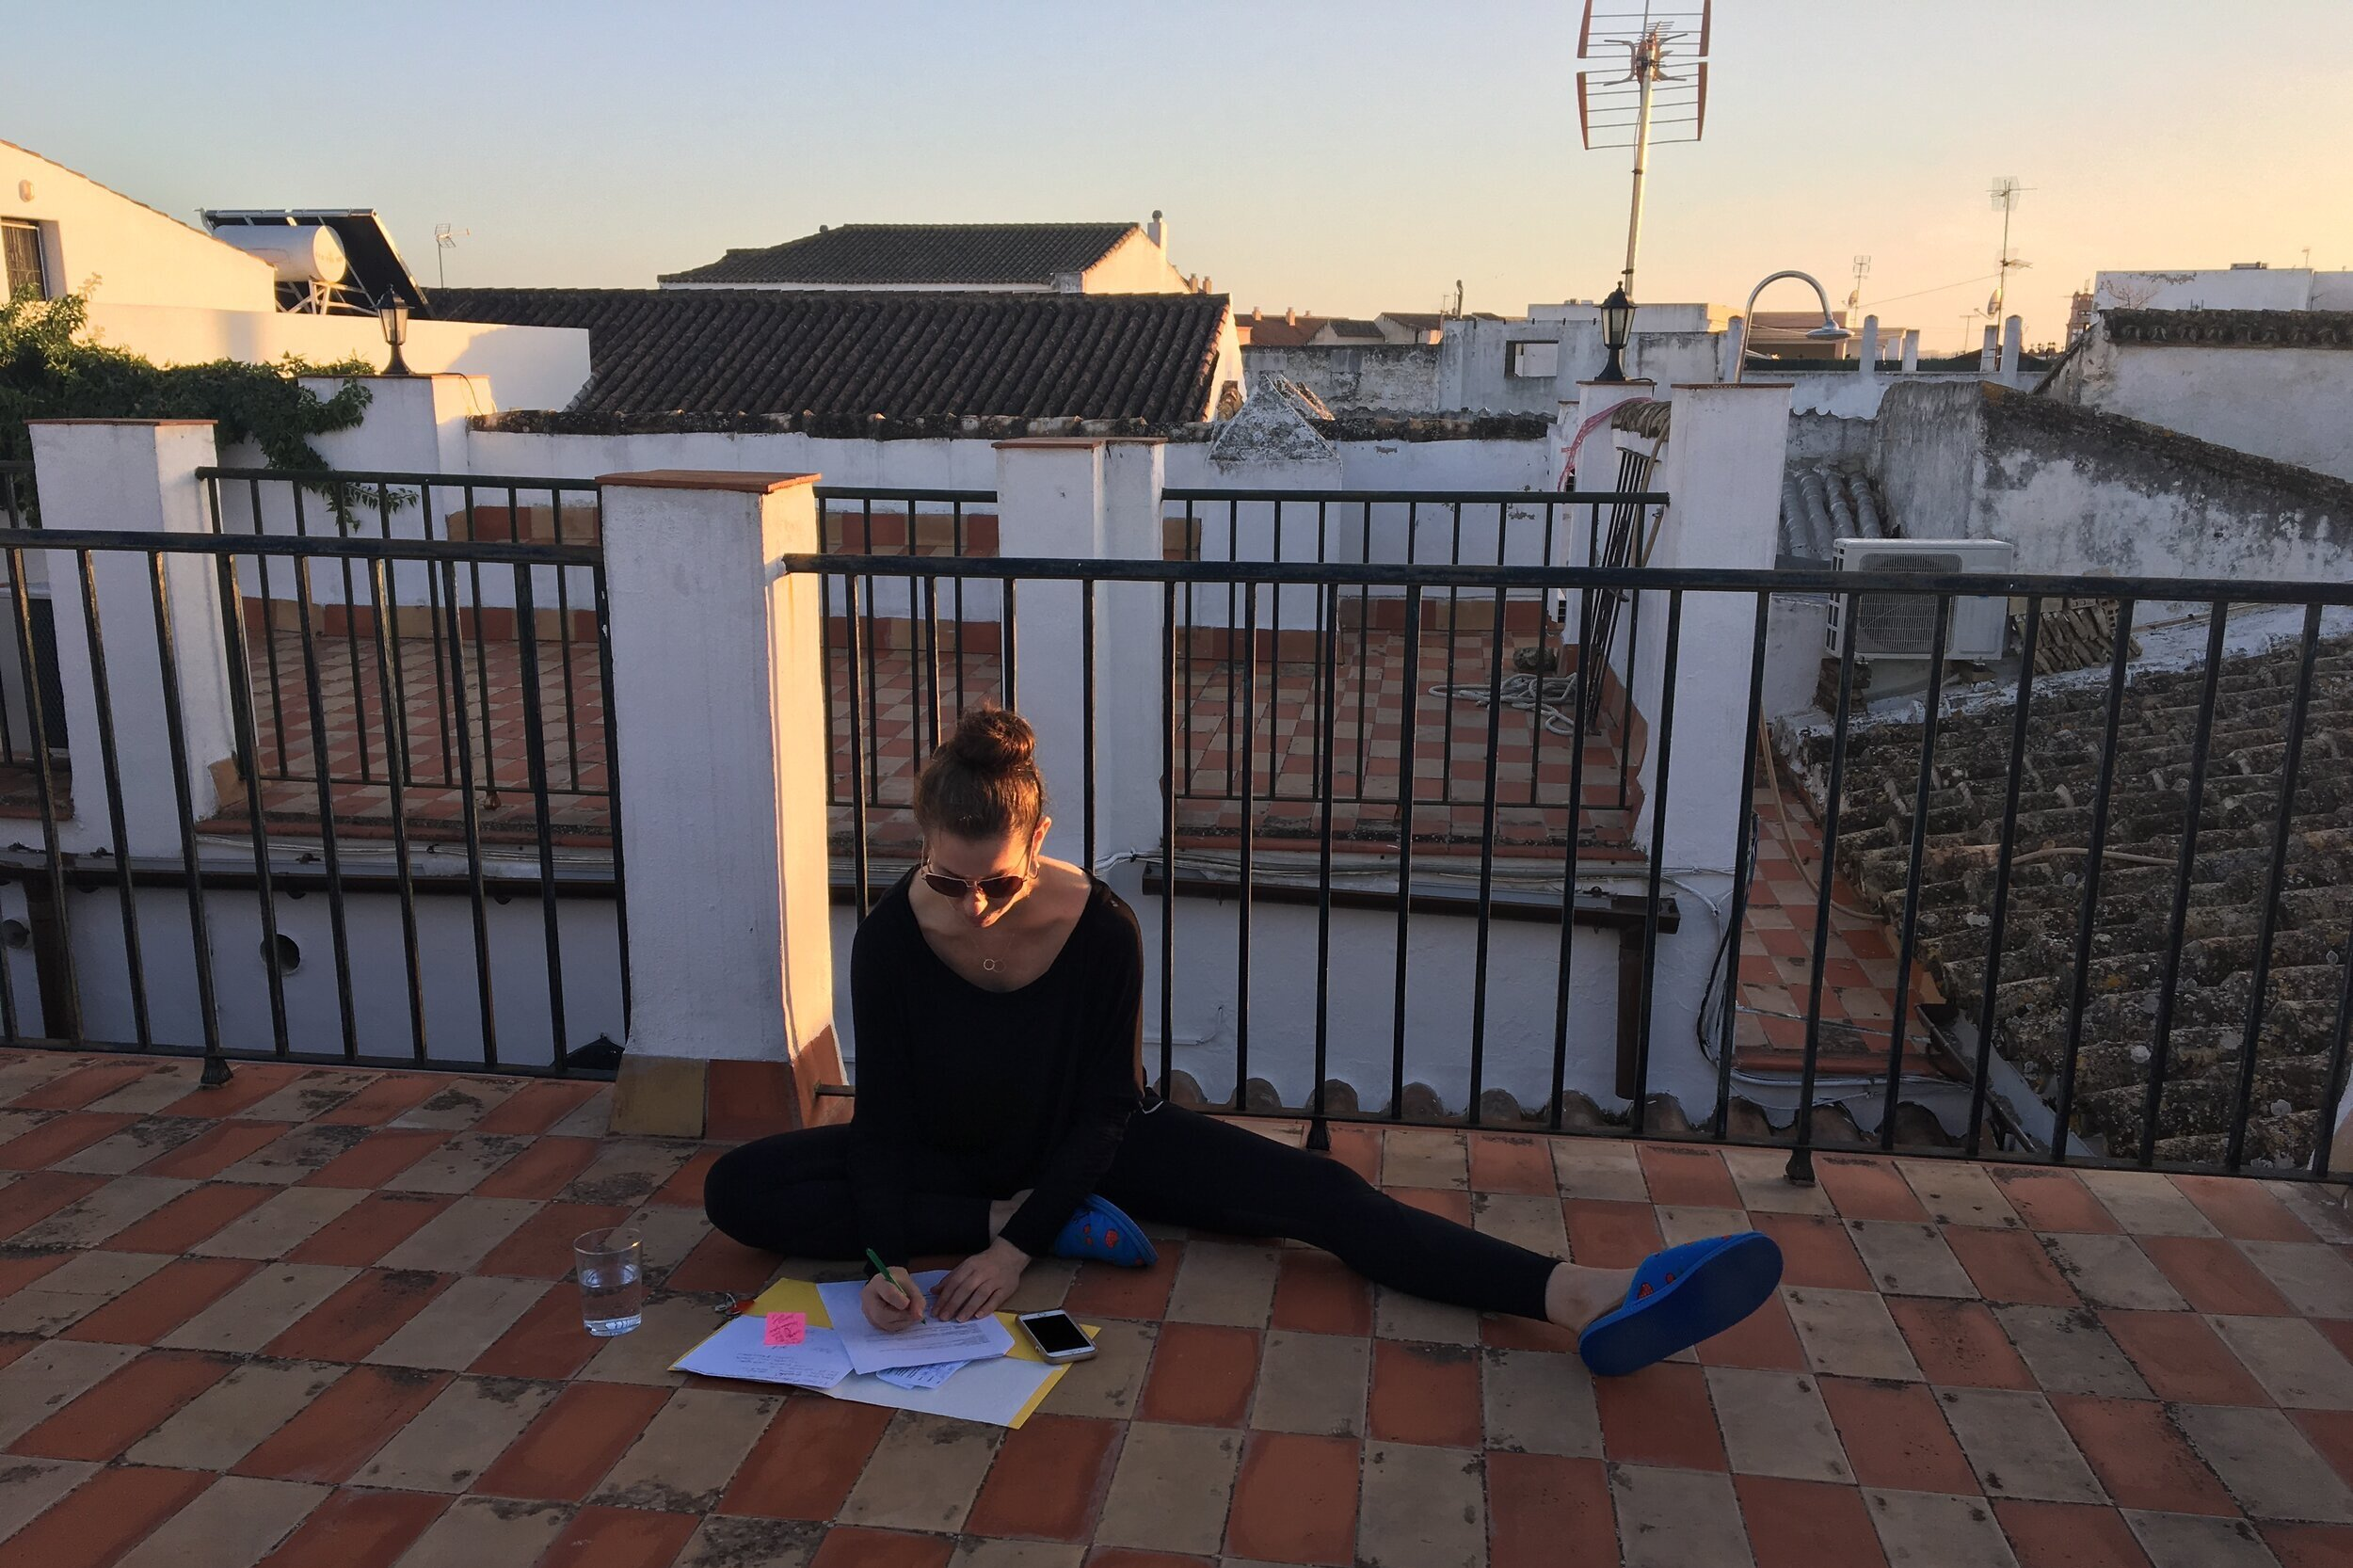 Working on the rooftop in Jerez, Spain during the Flamenco Tour to Jerez (photo by Tonya Edgren)